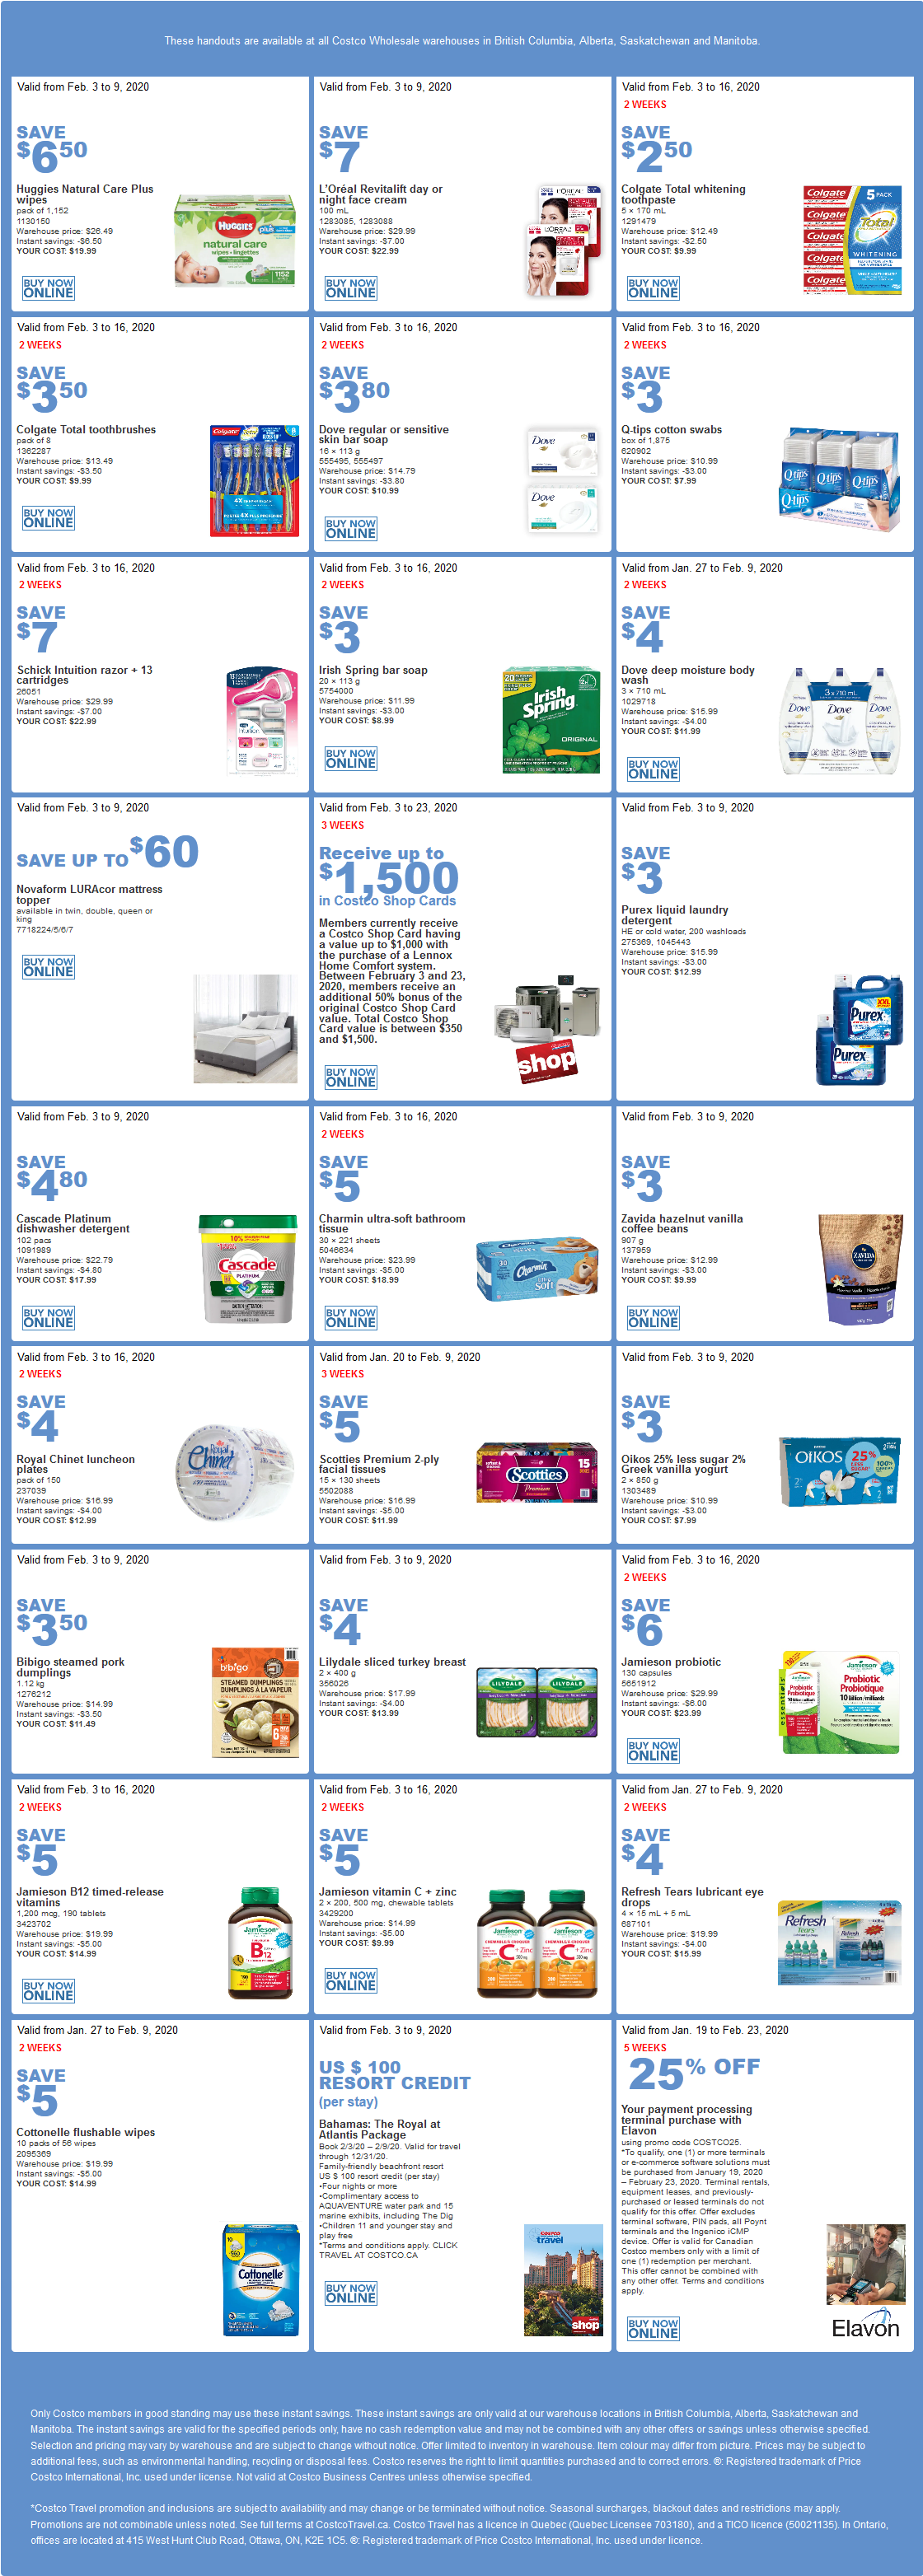 Costco Flyer for Feb 3-9, 2020, for BC, AB, SK, MB